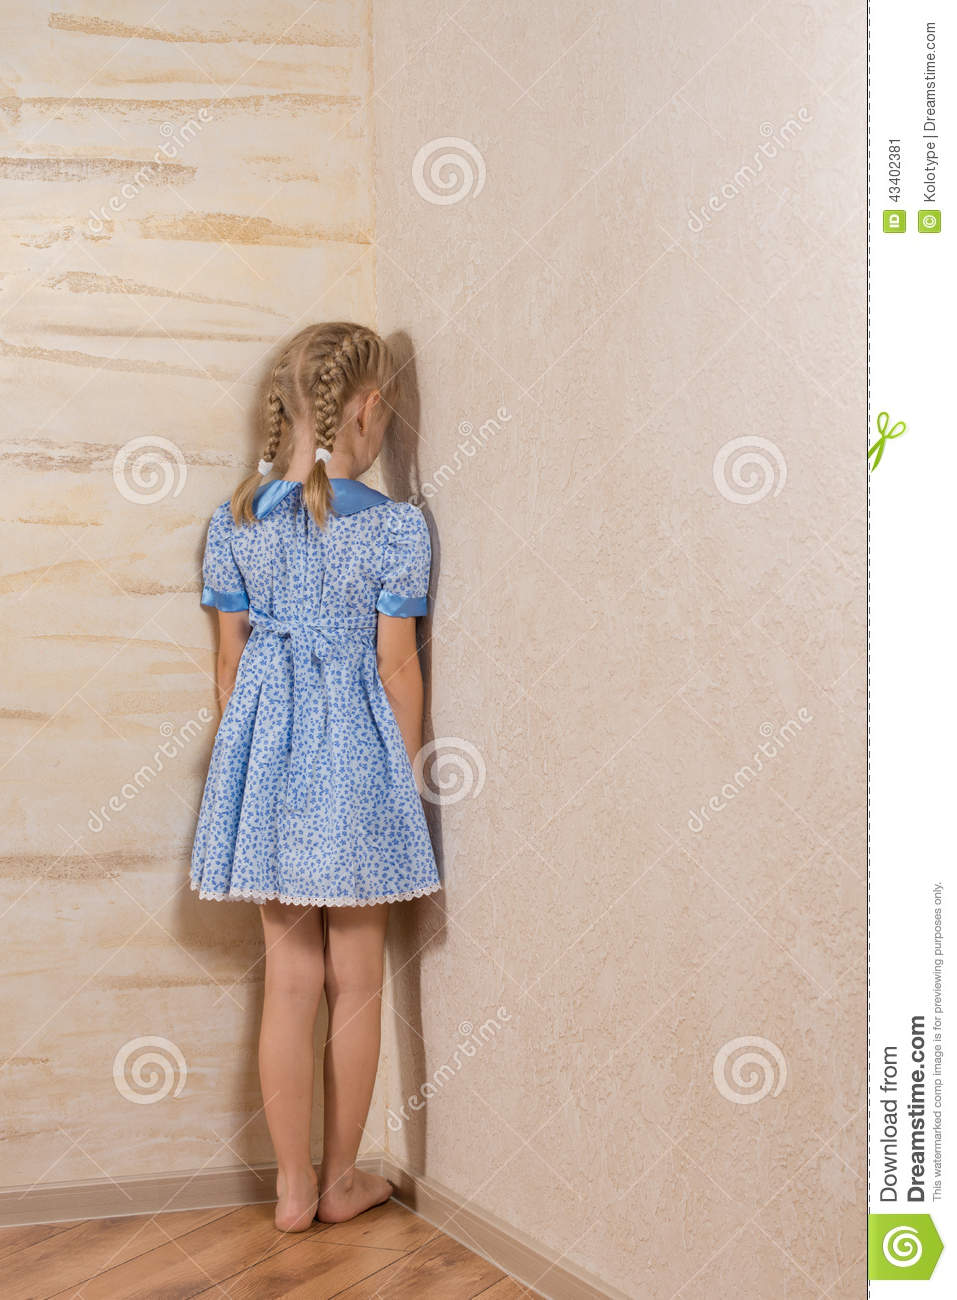 Standing In The Corner : Little girl being punished standing in the corner stock